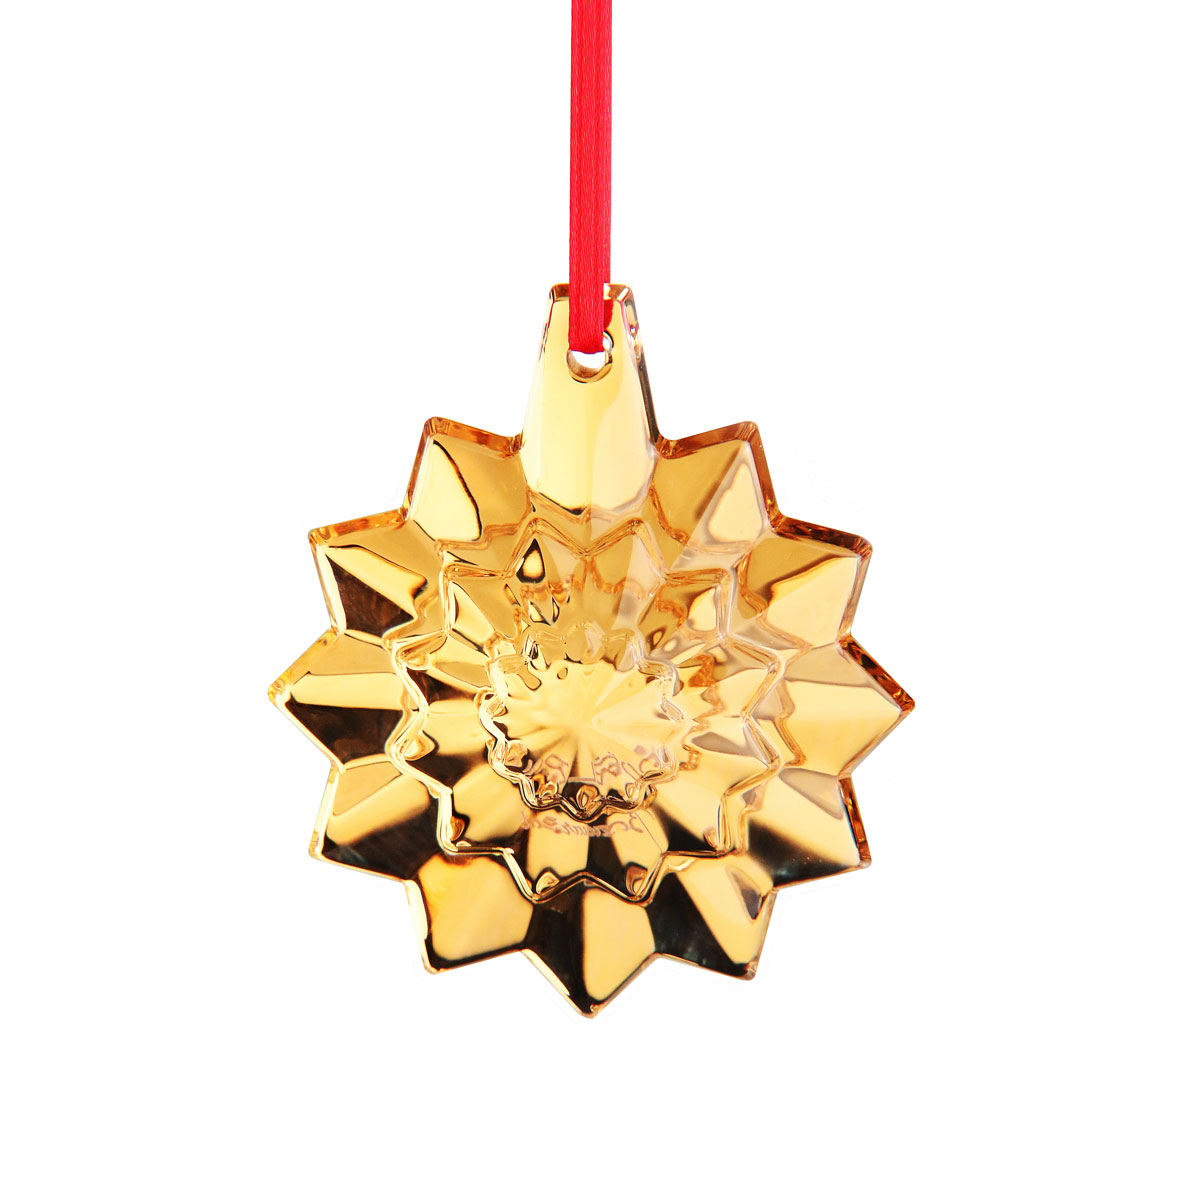 Baccarat Crystal Annual Ornament 2019, Gold